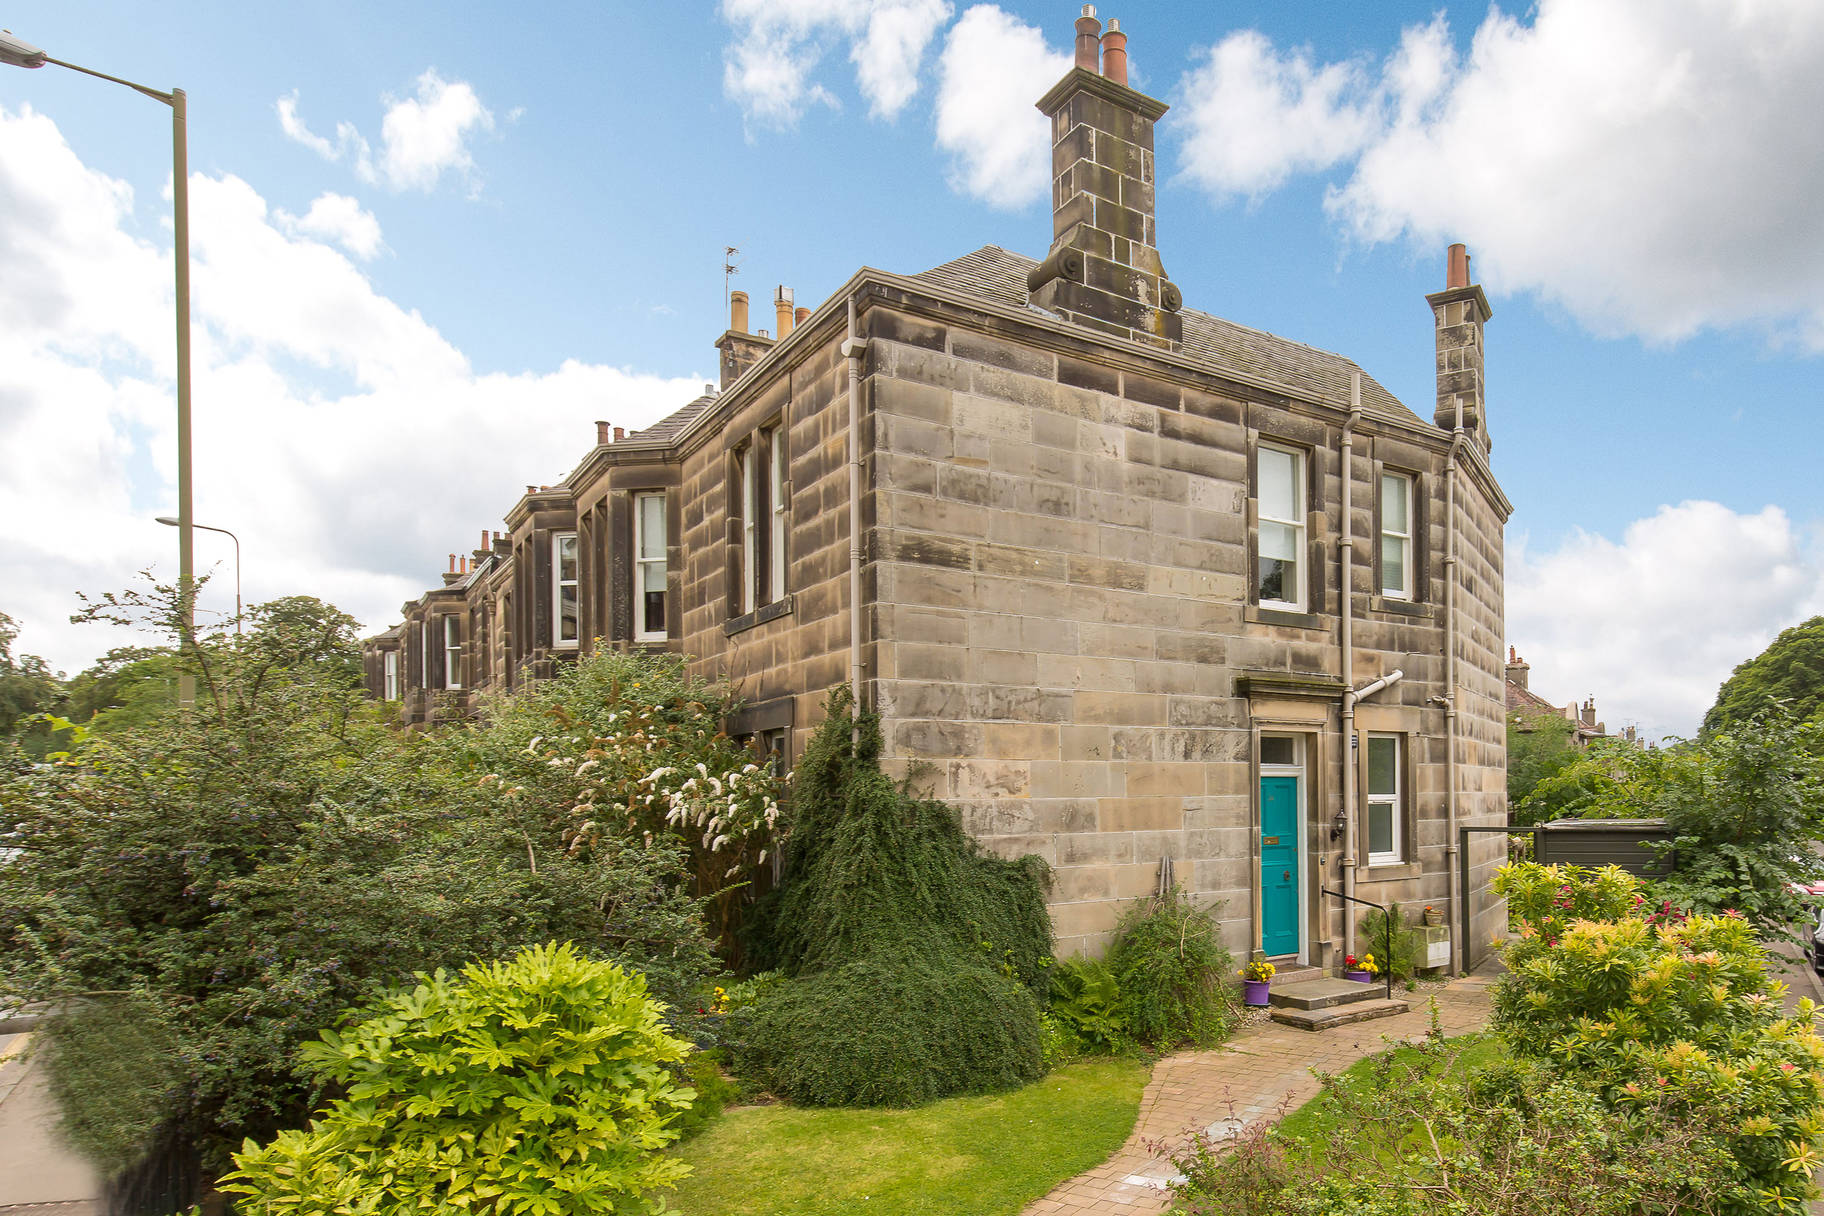 24 Greenbank Terrace, Edinburgh, EH10 5RA